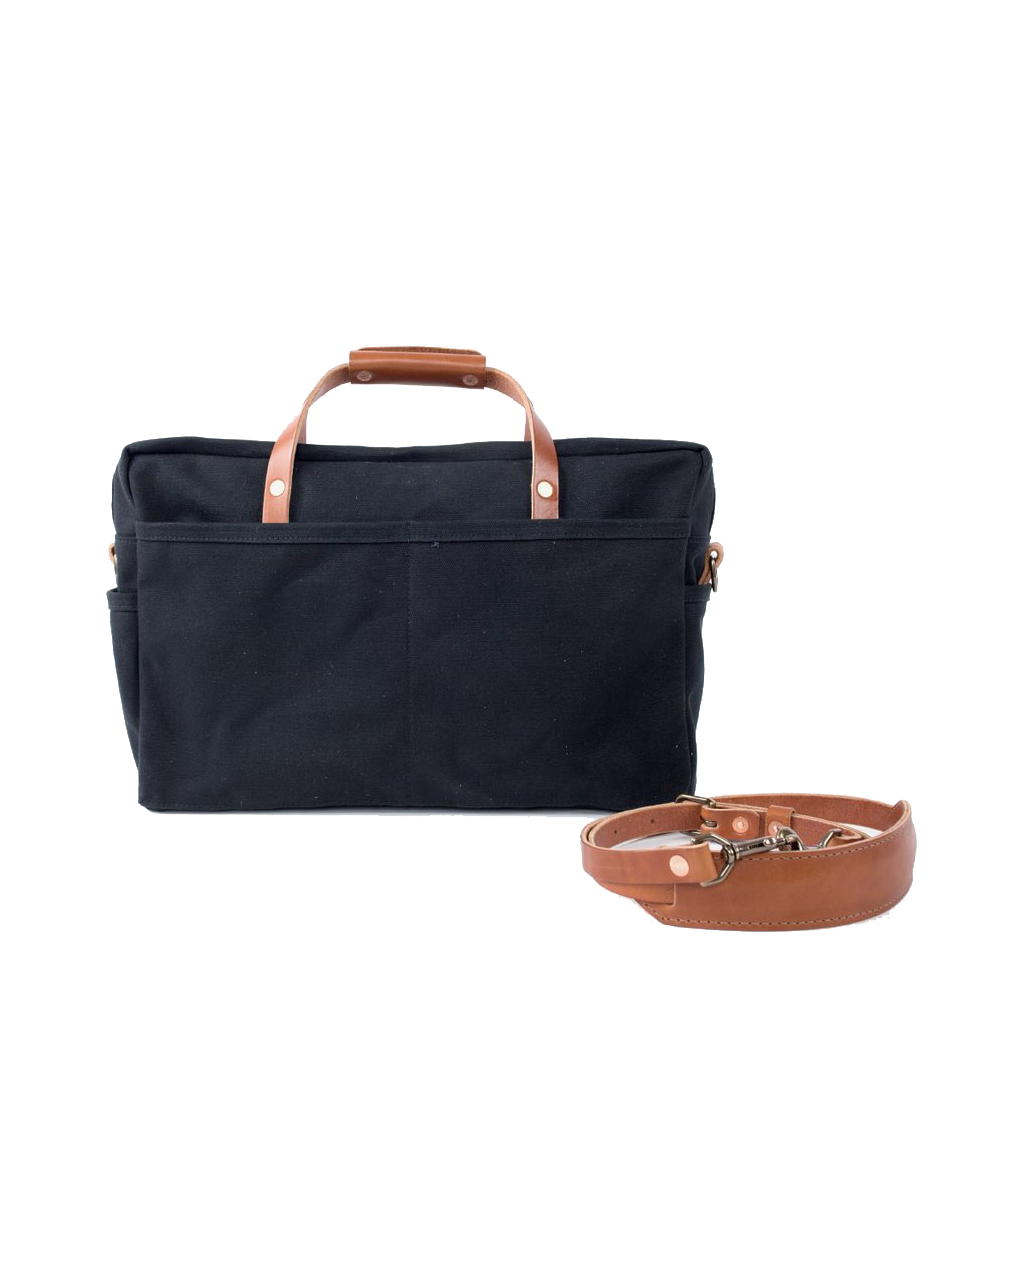 The Courier Briefcase - Black